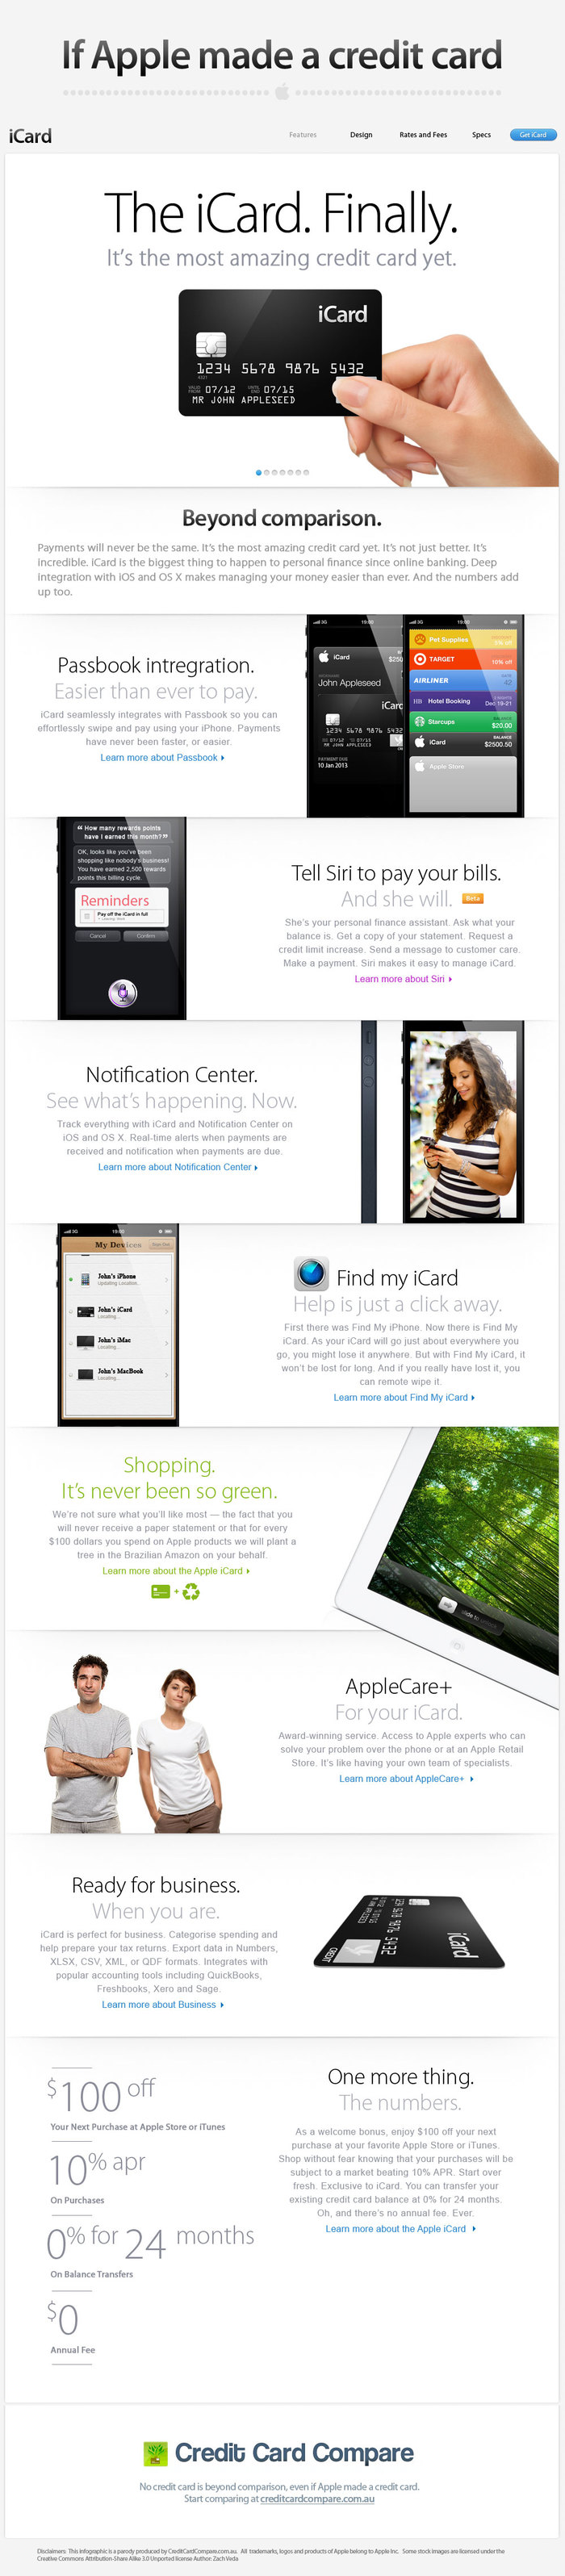 iCard: If Apple Made a Credit Card